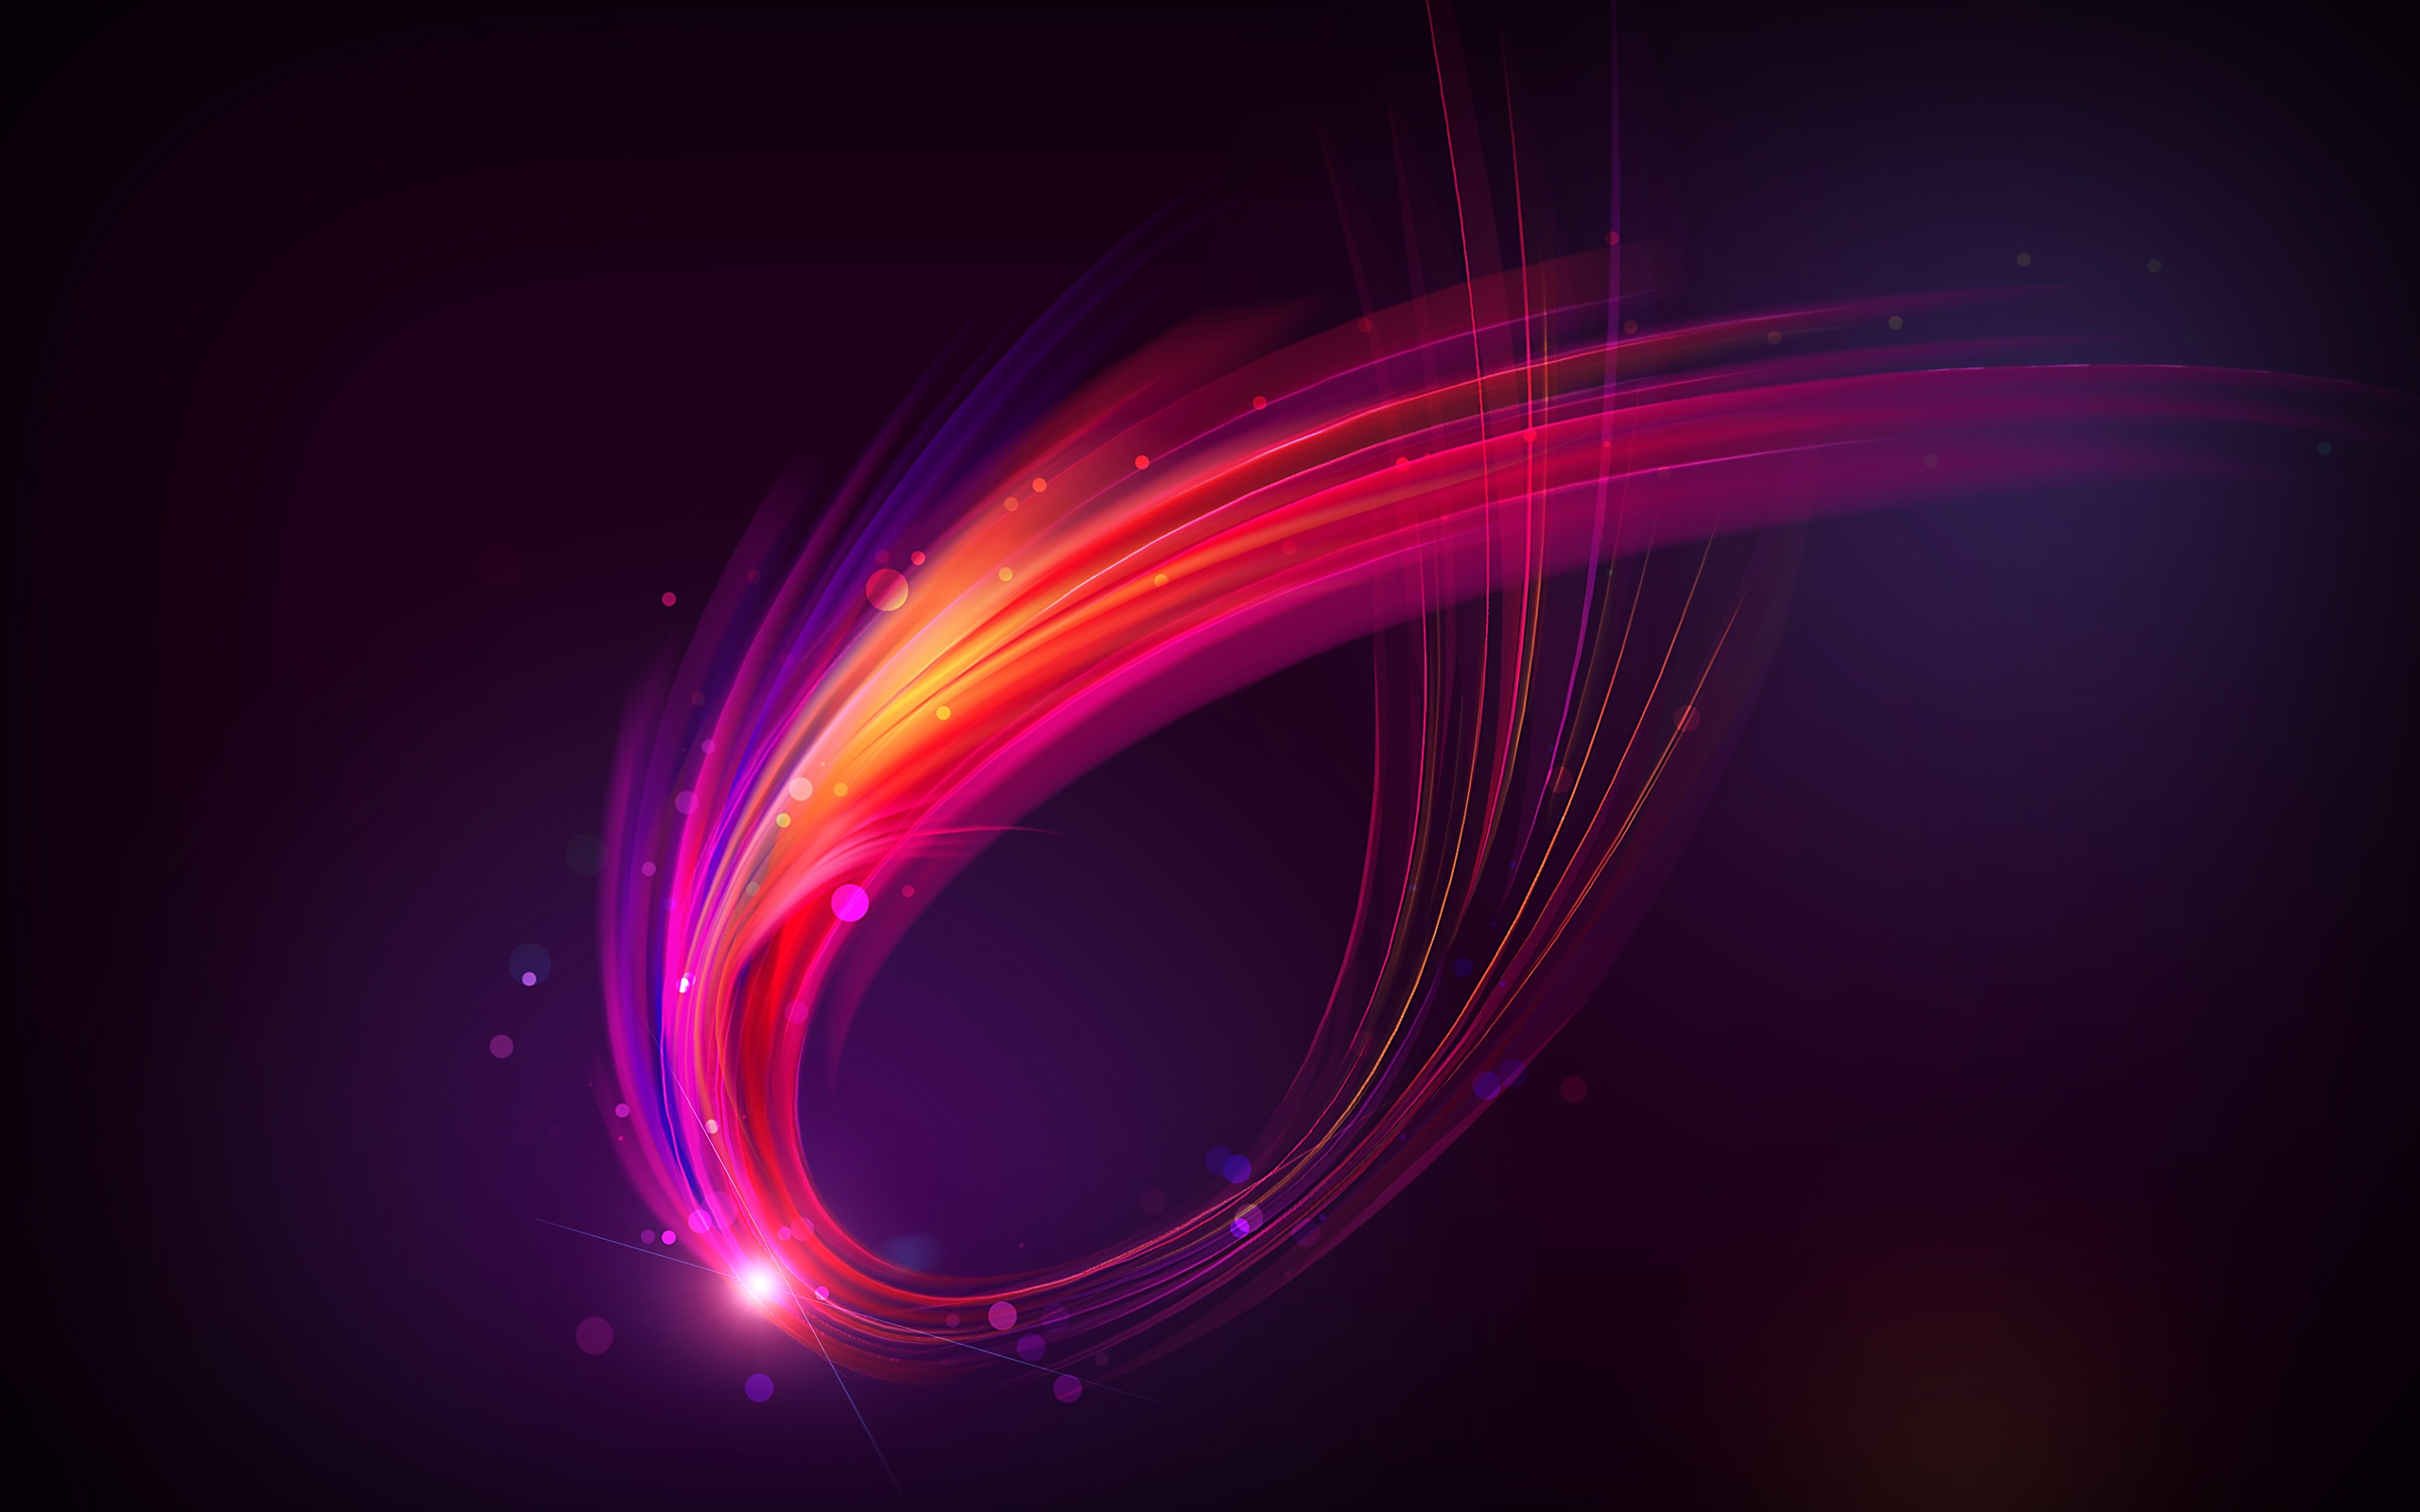 Colorful 3d Abstract Wallpapers Abstract Wallpaper 2560x1600 39916